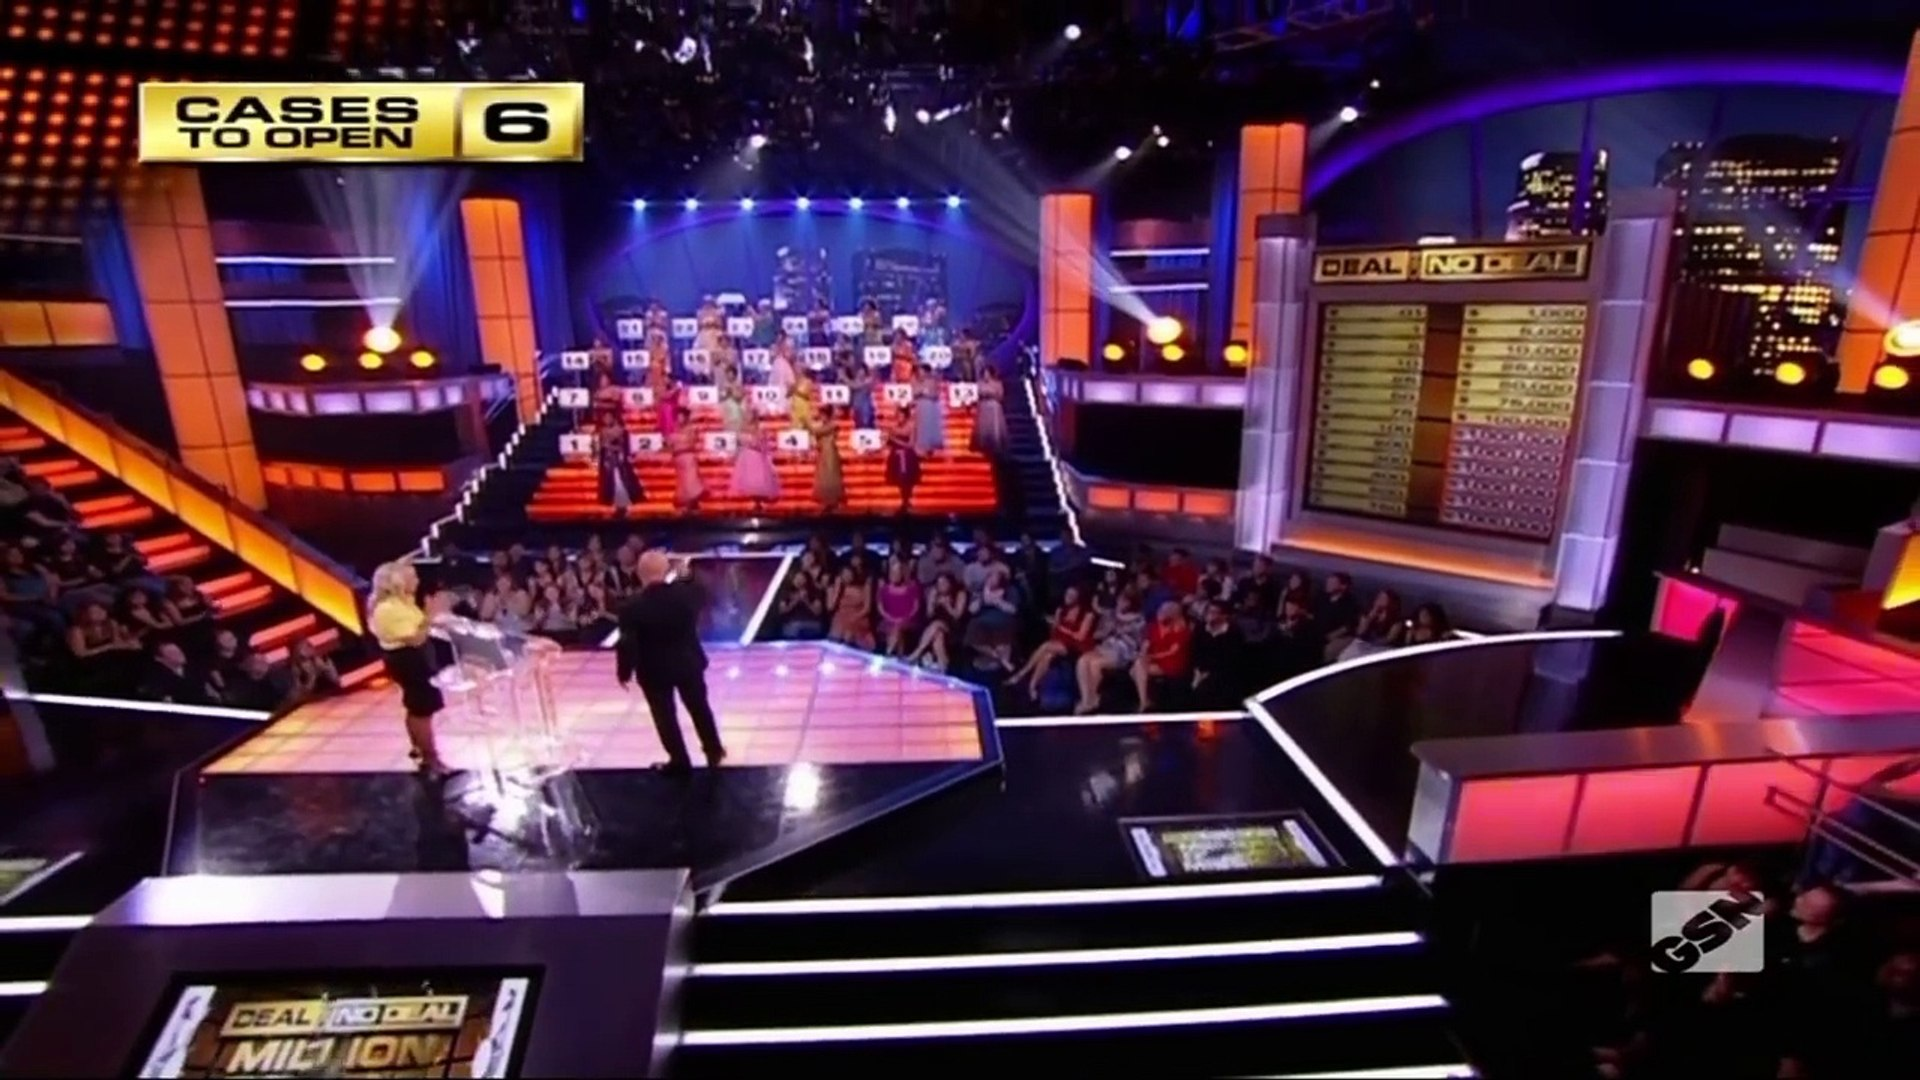 Deal Or No Deal Layna Bride S4 Ep 6 10 10 08 Video Dailymotion Images, Photos, Reviews